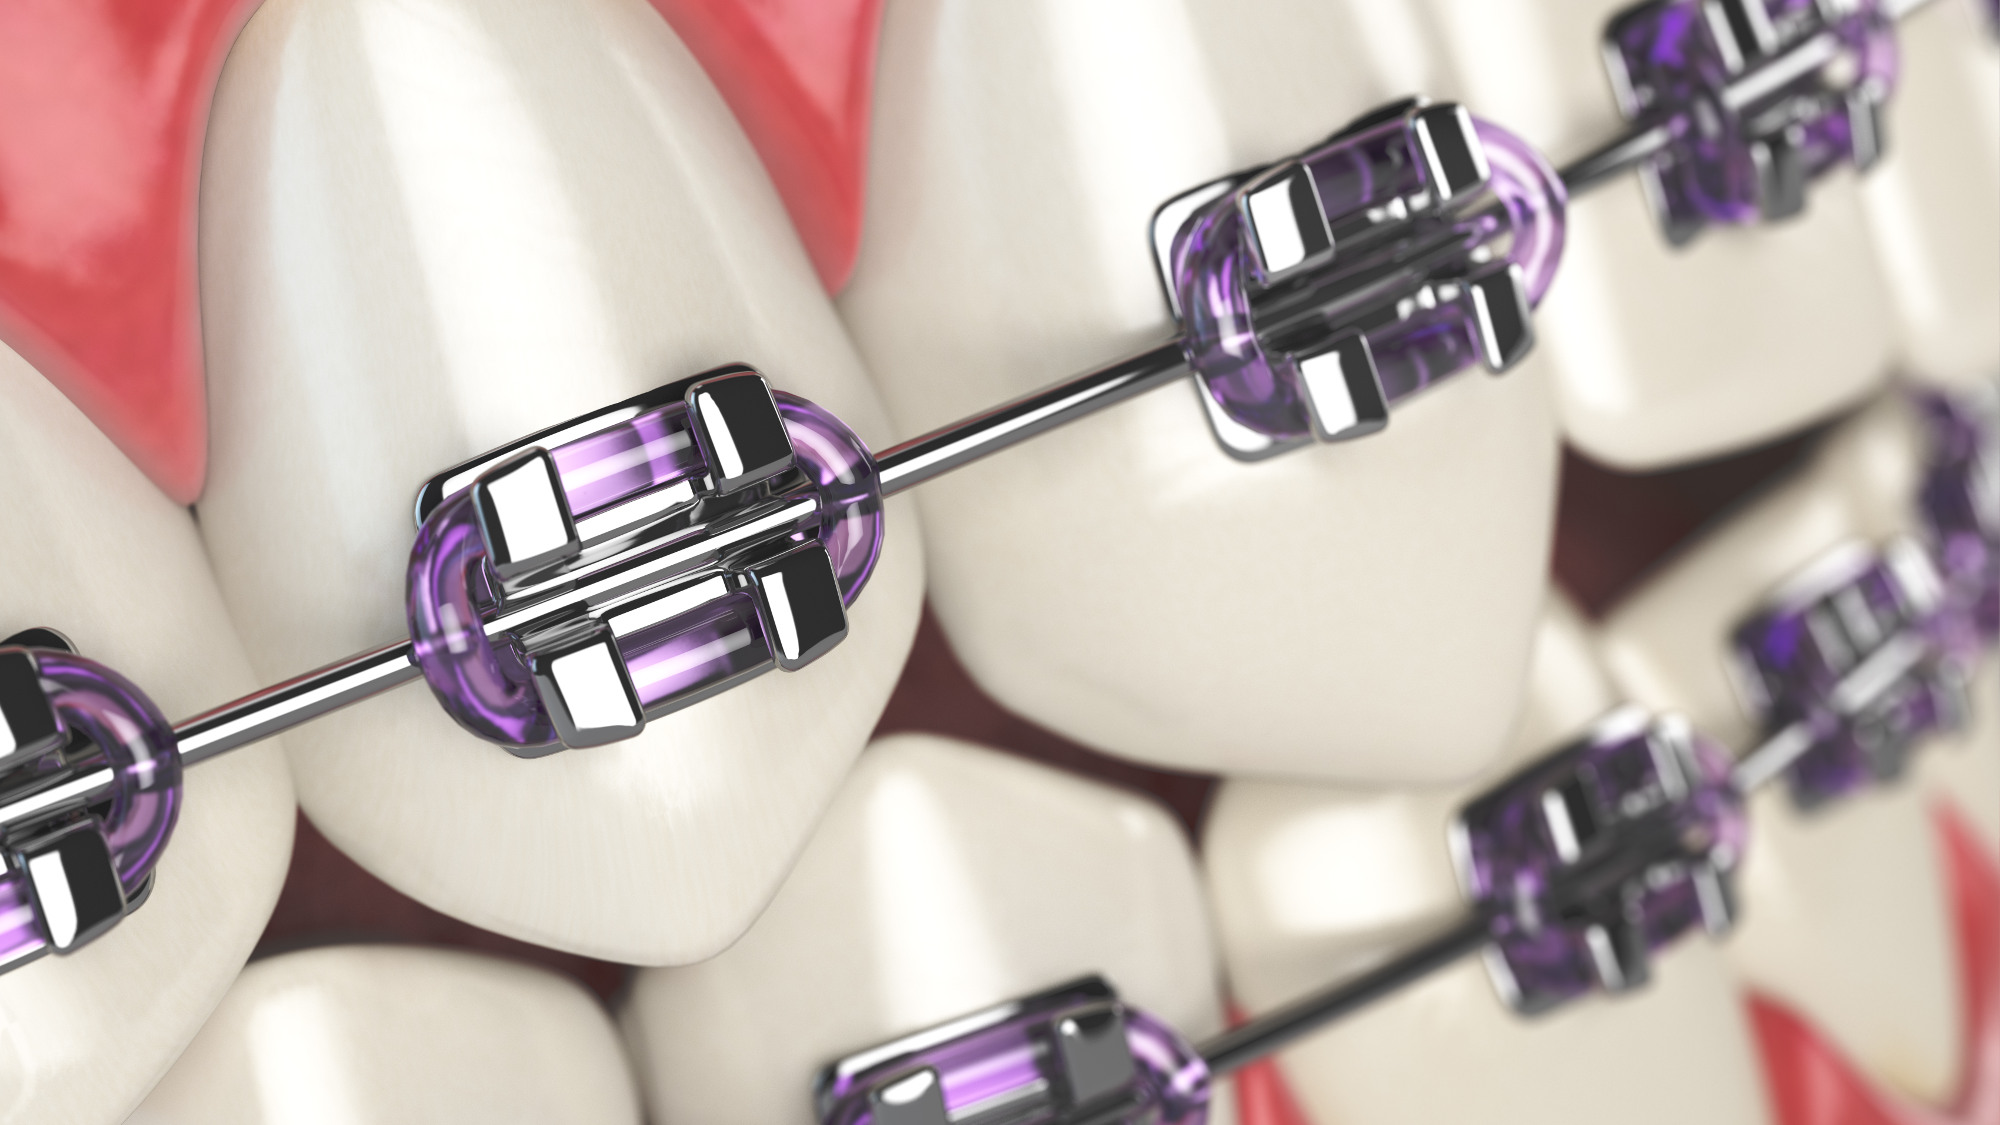 Will COVID-19 push orthodontics further into the digital space?